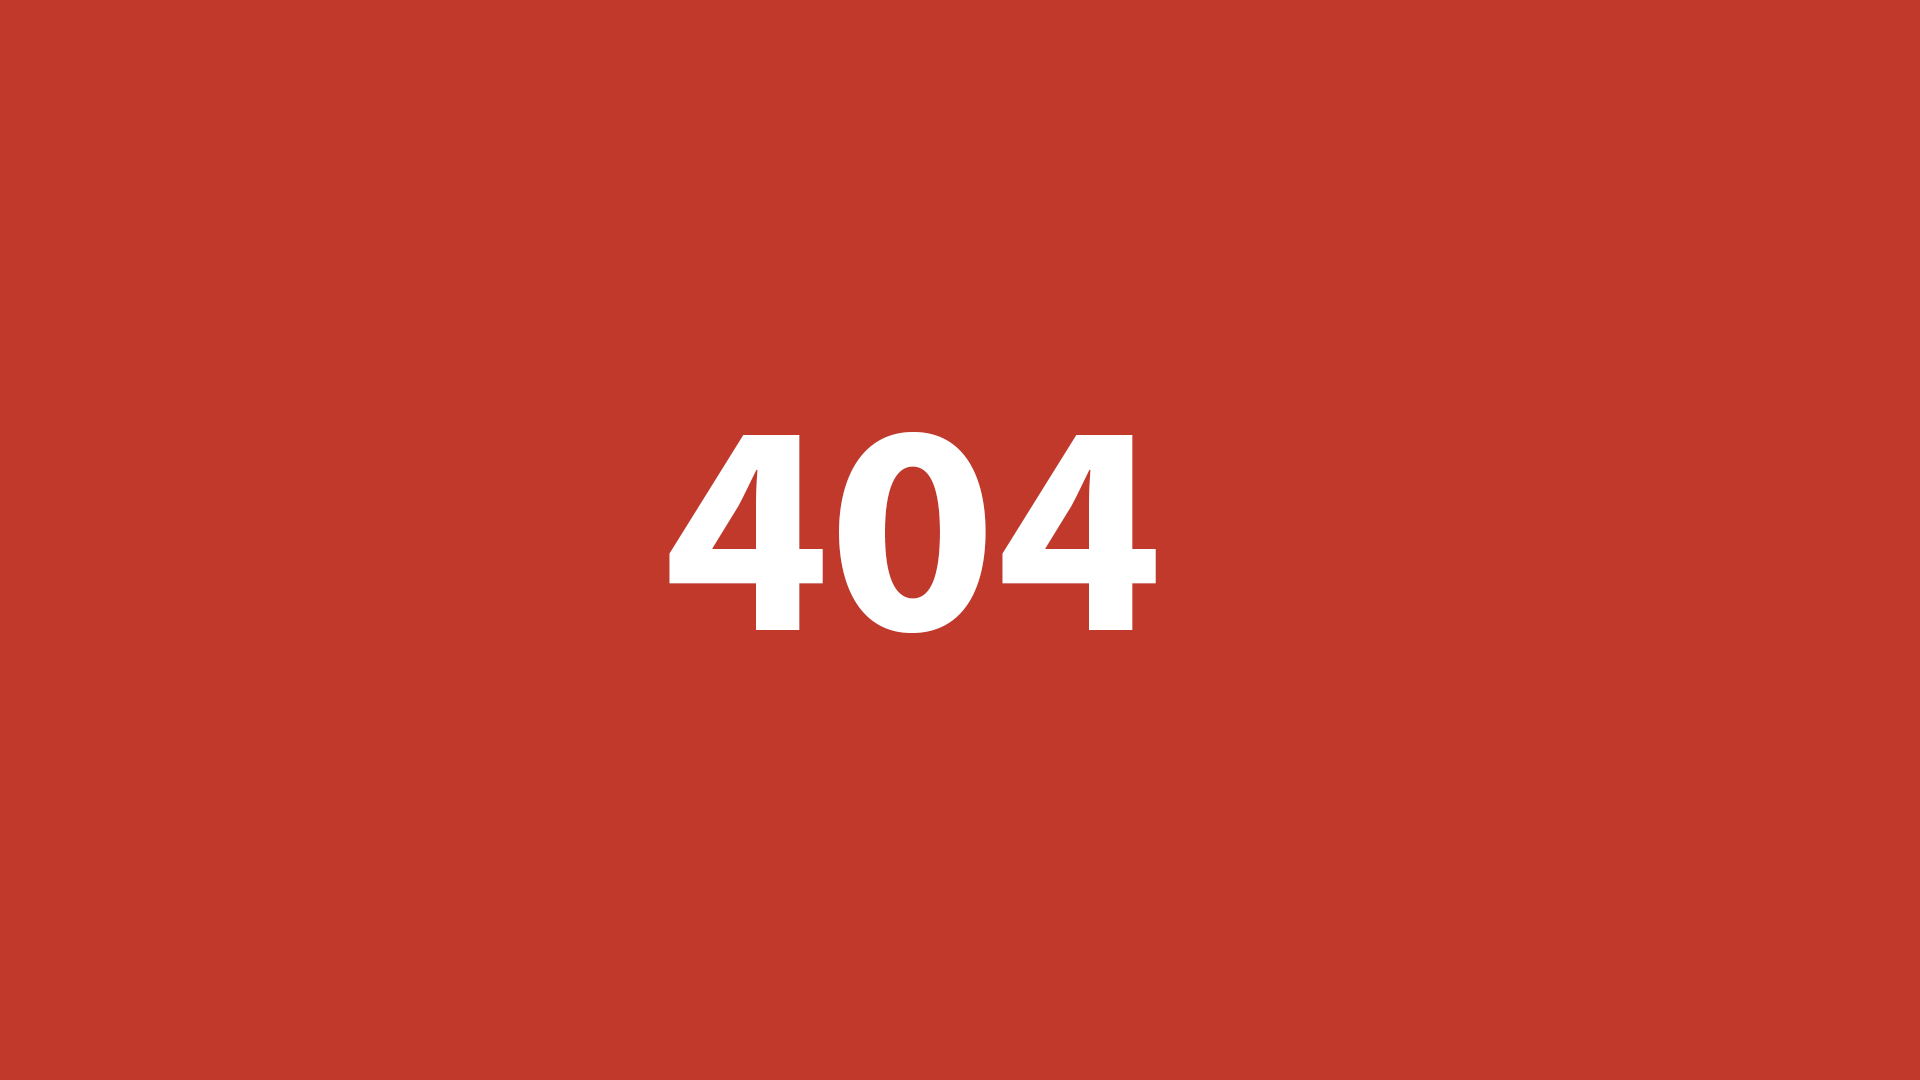 404 Not Found Error Page Examples